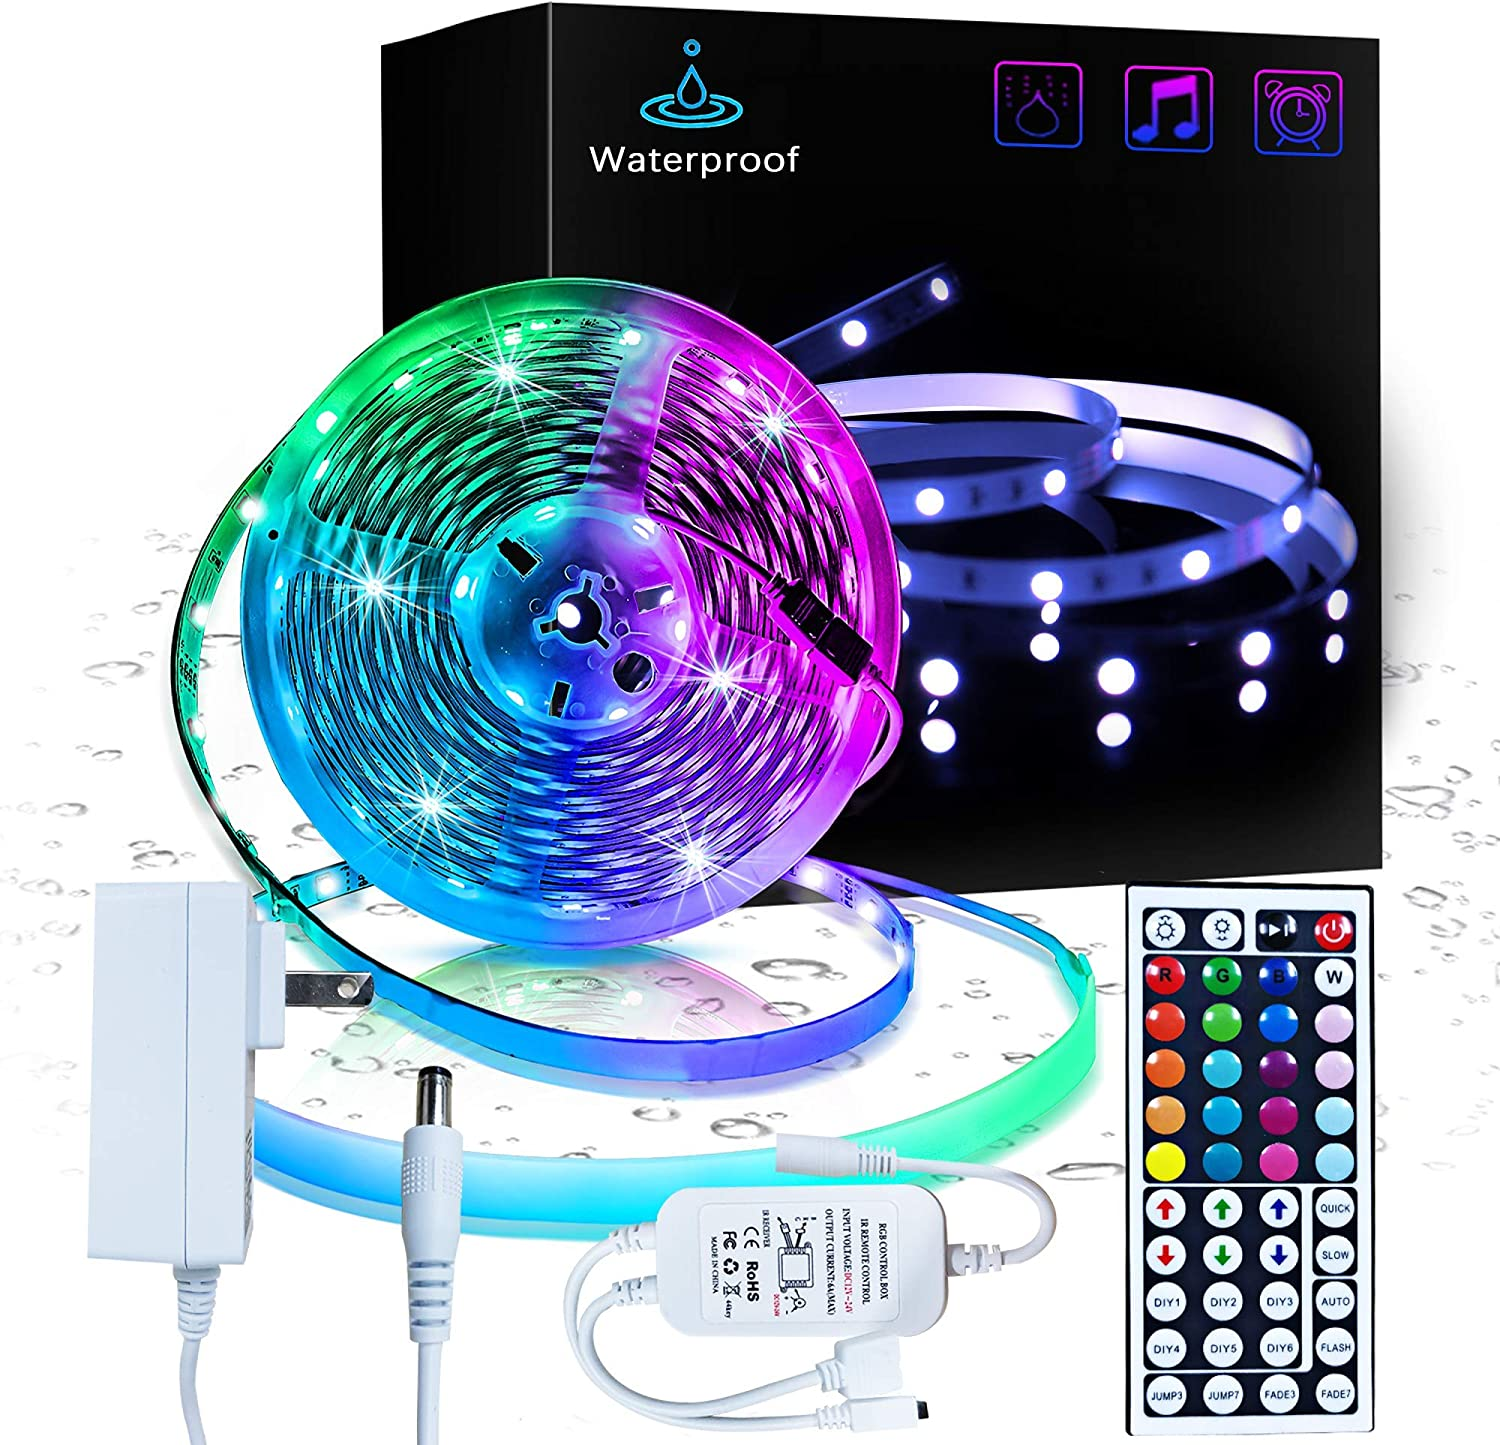 Inscrok 16.4ft LED Light Strips 5050 RGB Waterproof LED Strip Lights for Bedroom,Aesthetic Room Decor, Home Decorations